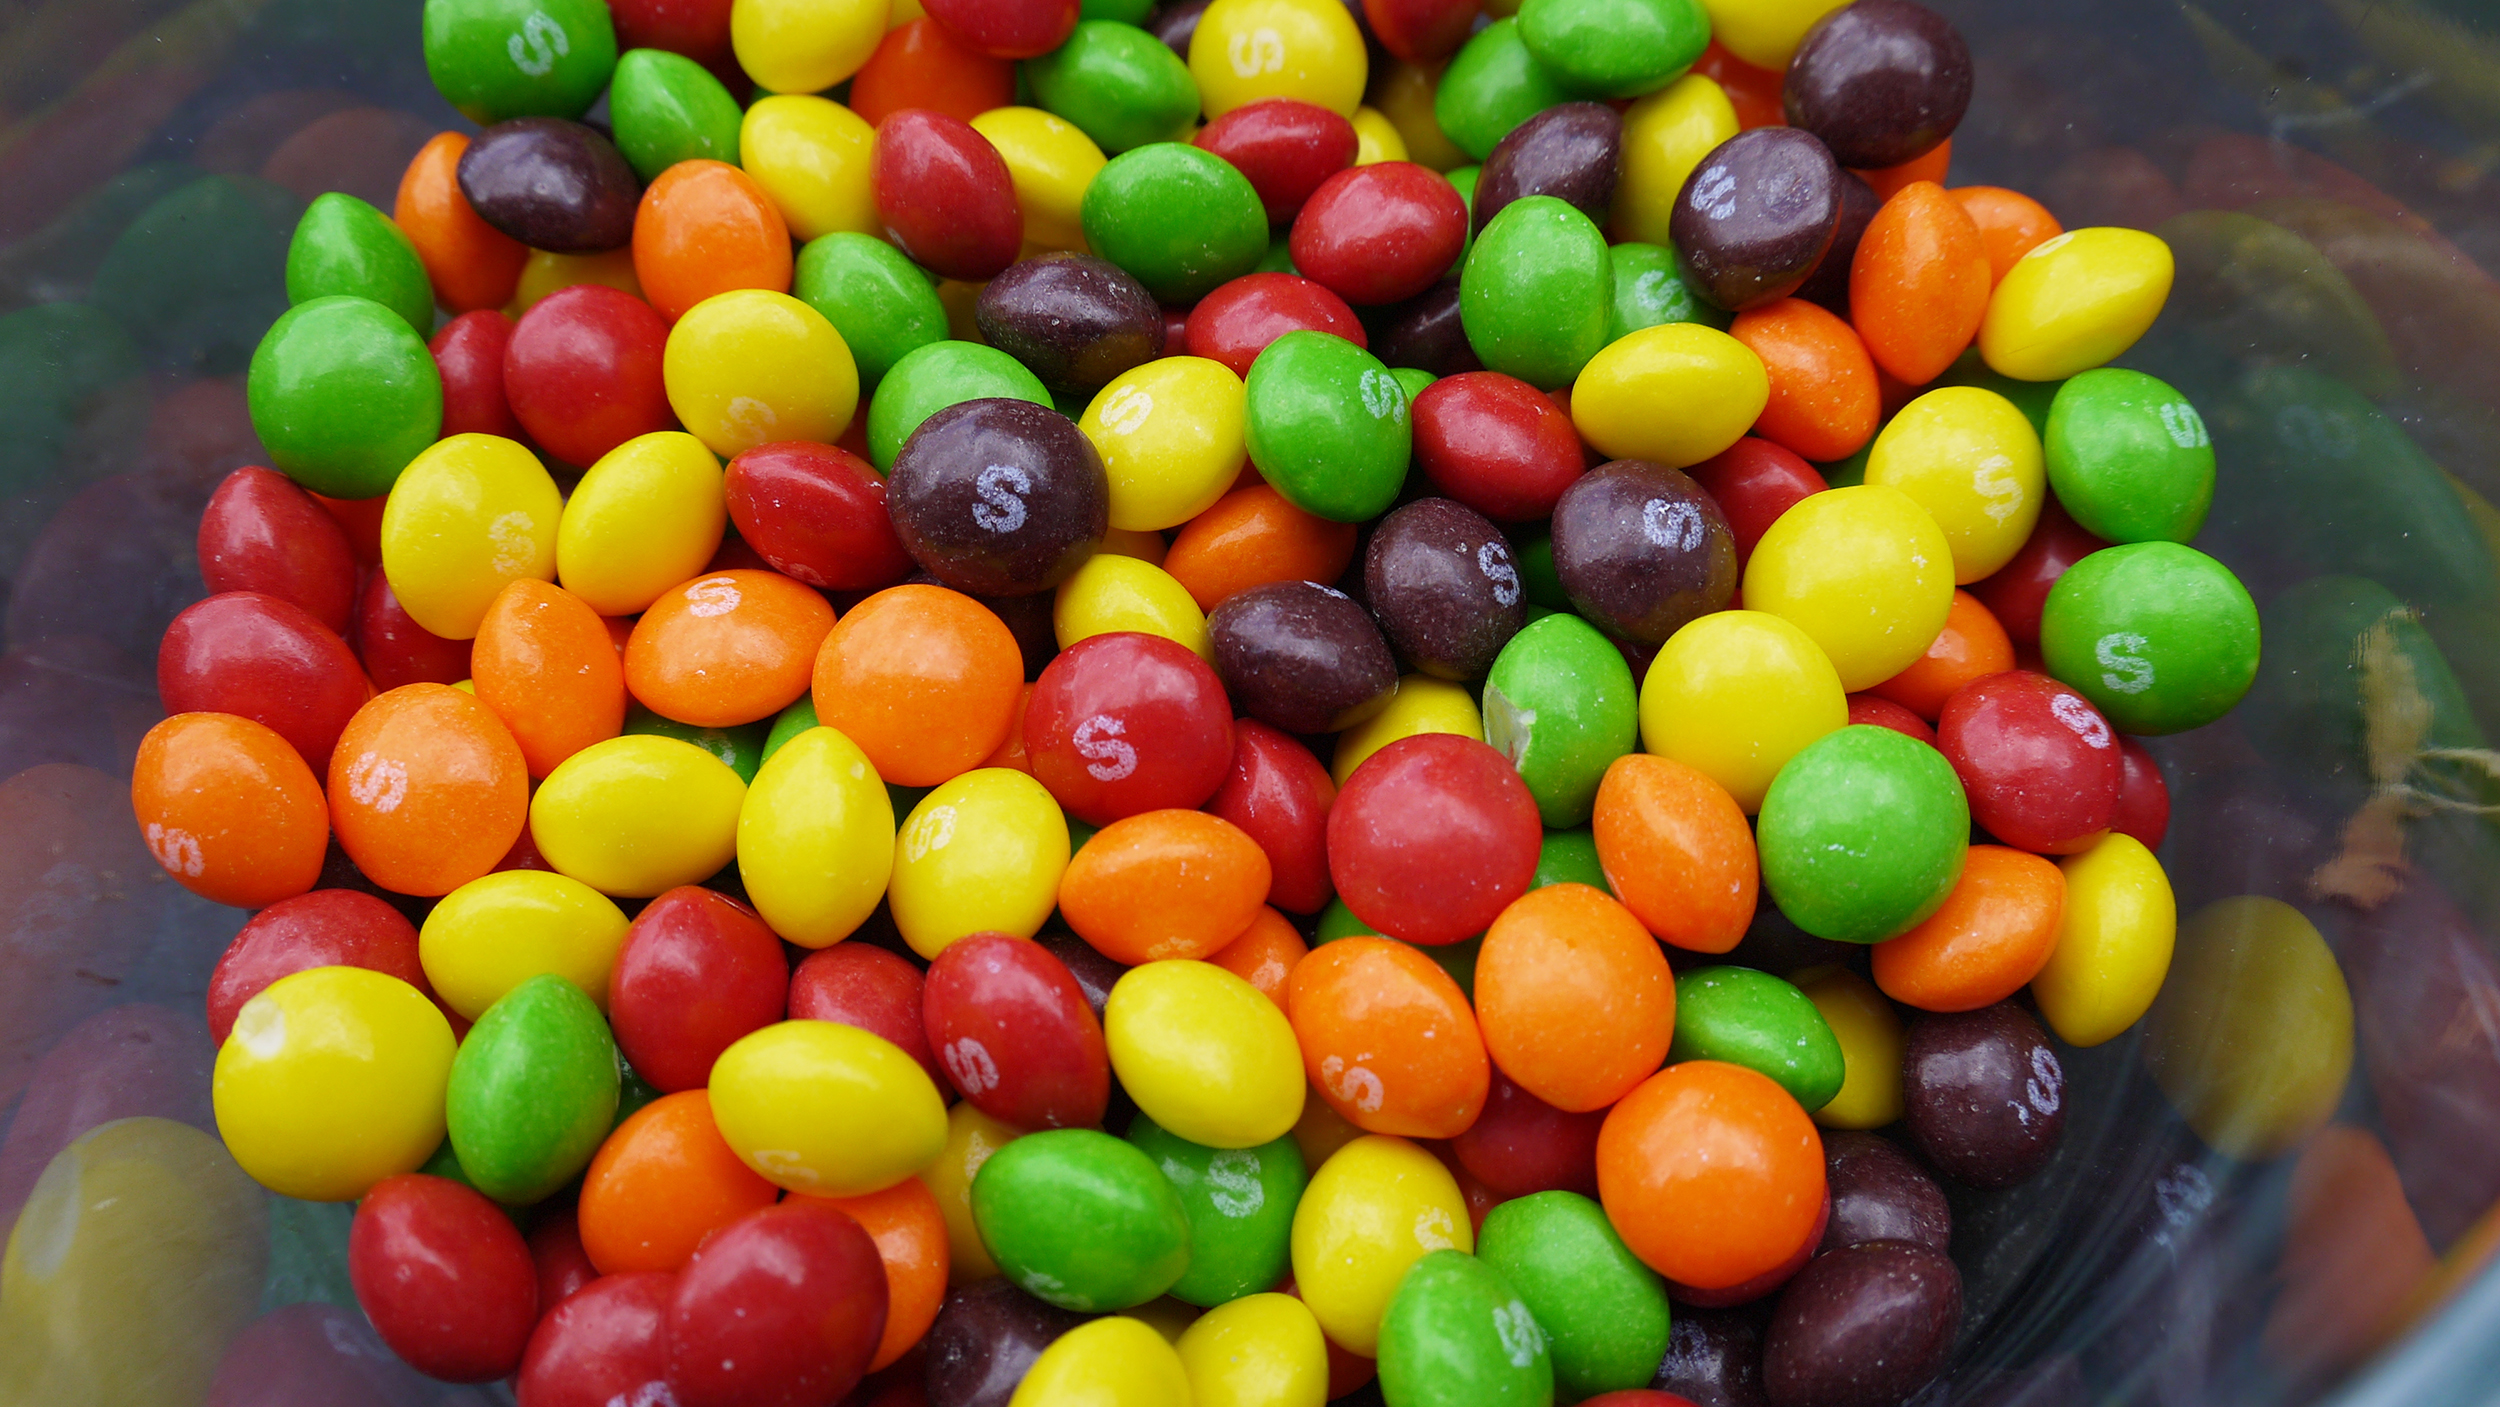 These New Skittles Chewies Are Skittles Without Shells